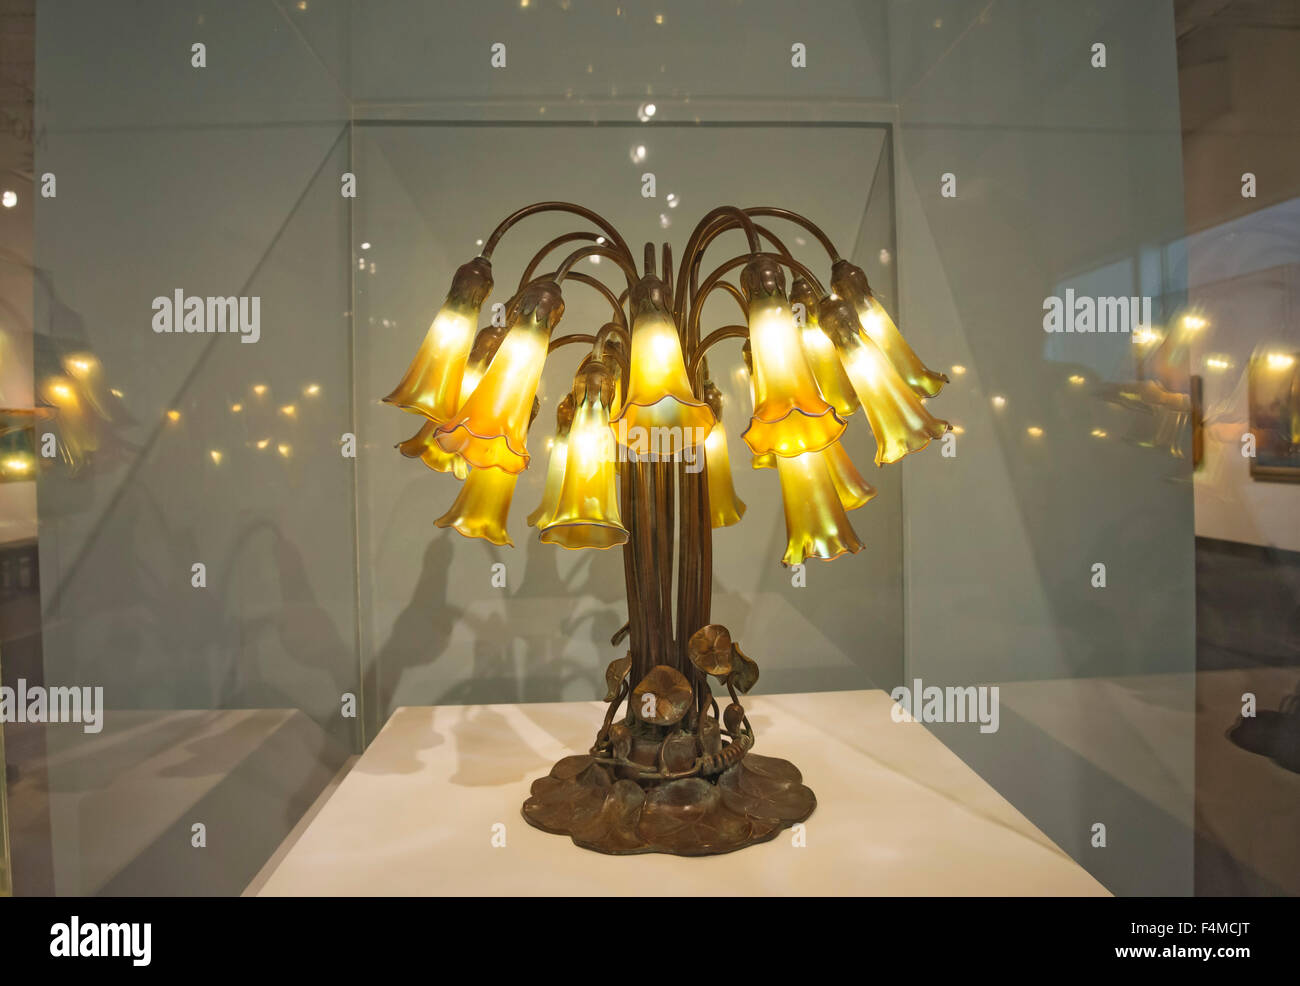 Louis Comfort Tiffany, Eighteen-Light Pond Lily Lamp, 1902, of Favrile glass and bronze - Stock Image